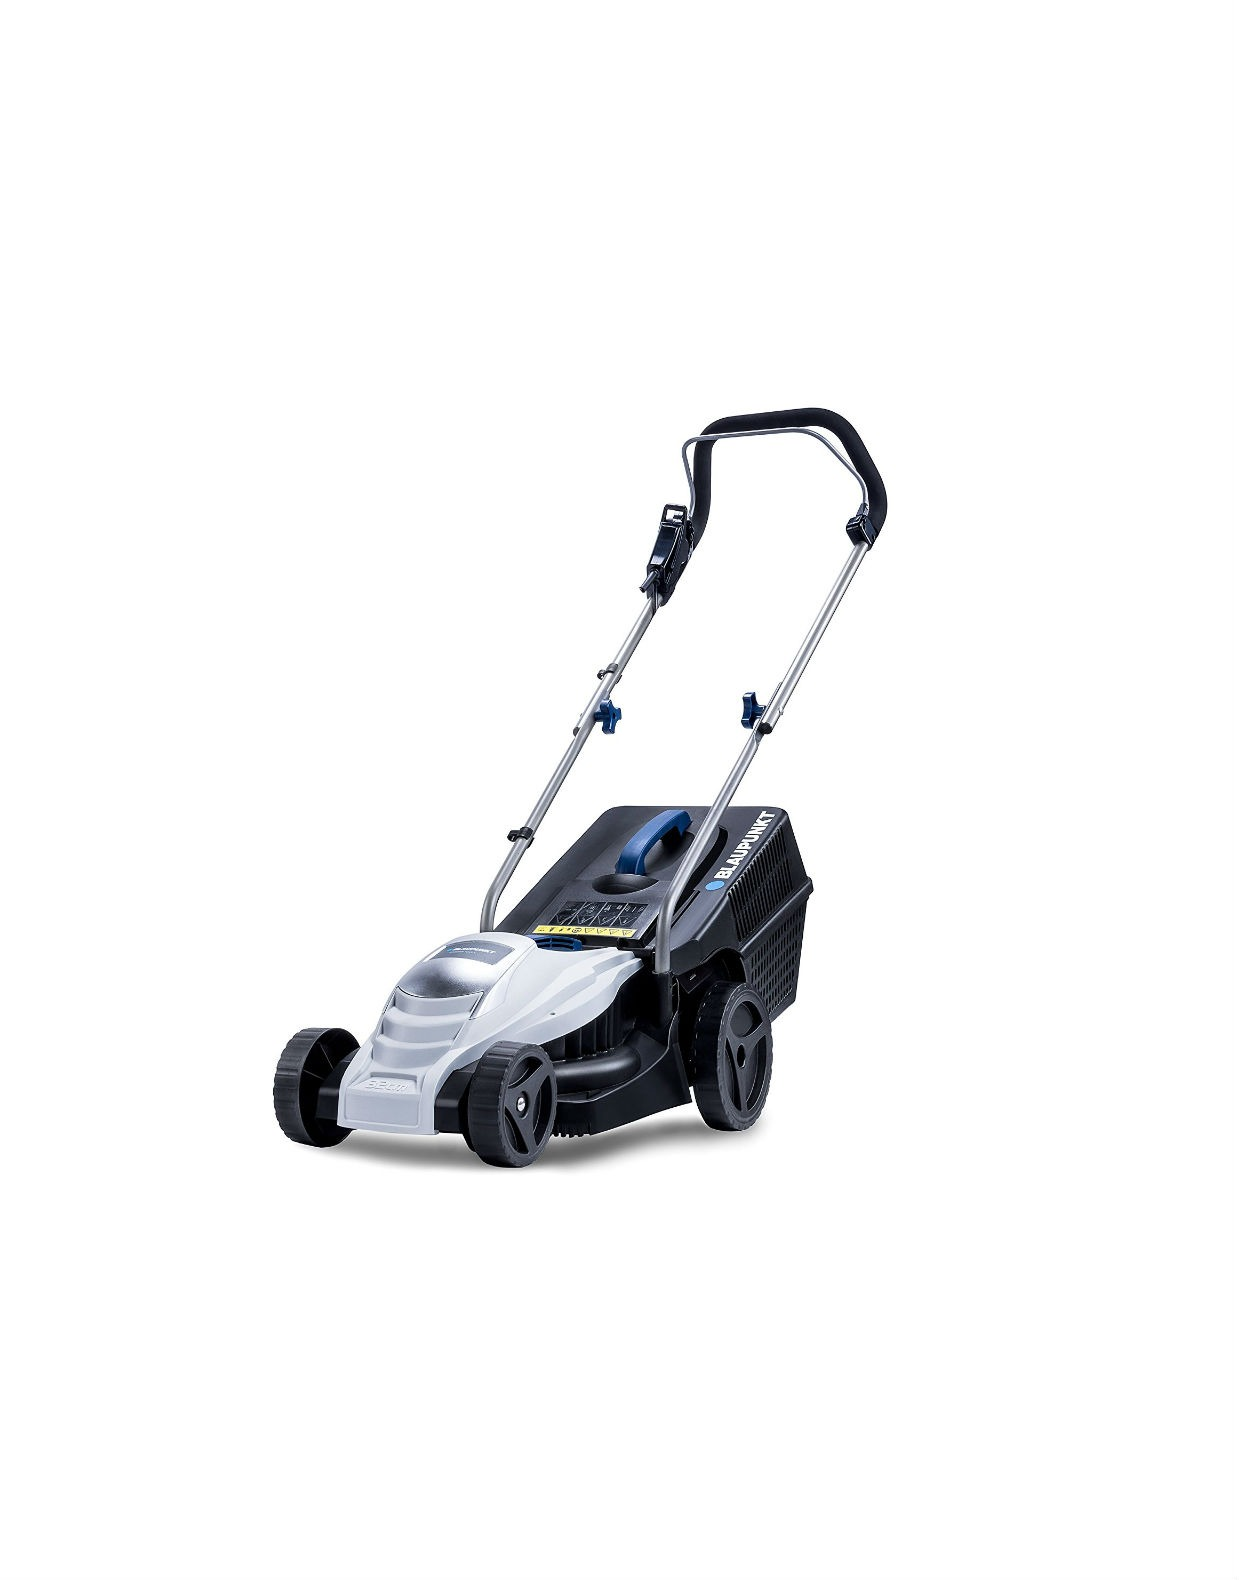 Blaukumpt GX1000 Mower